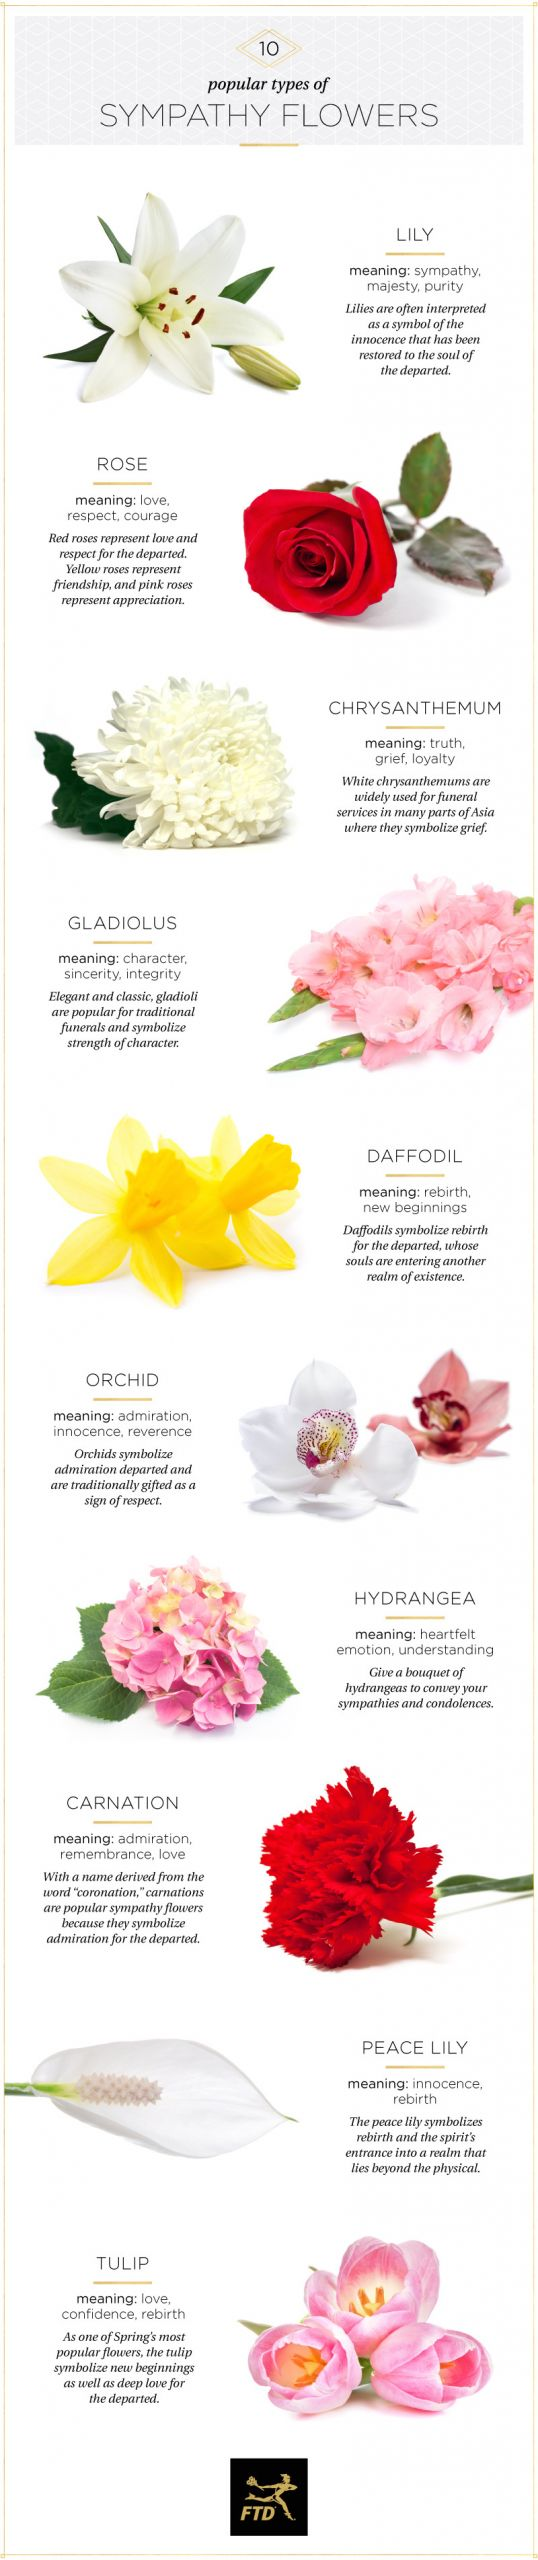 What Do You Say On A Sympathy Flower Card 13 Helpful Tips for Proper Funeral Etiquette Ftd Com